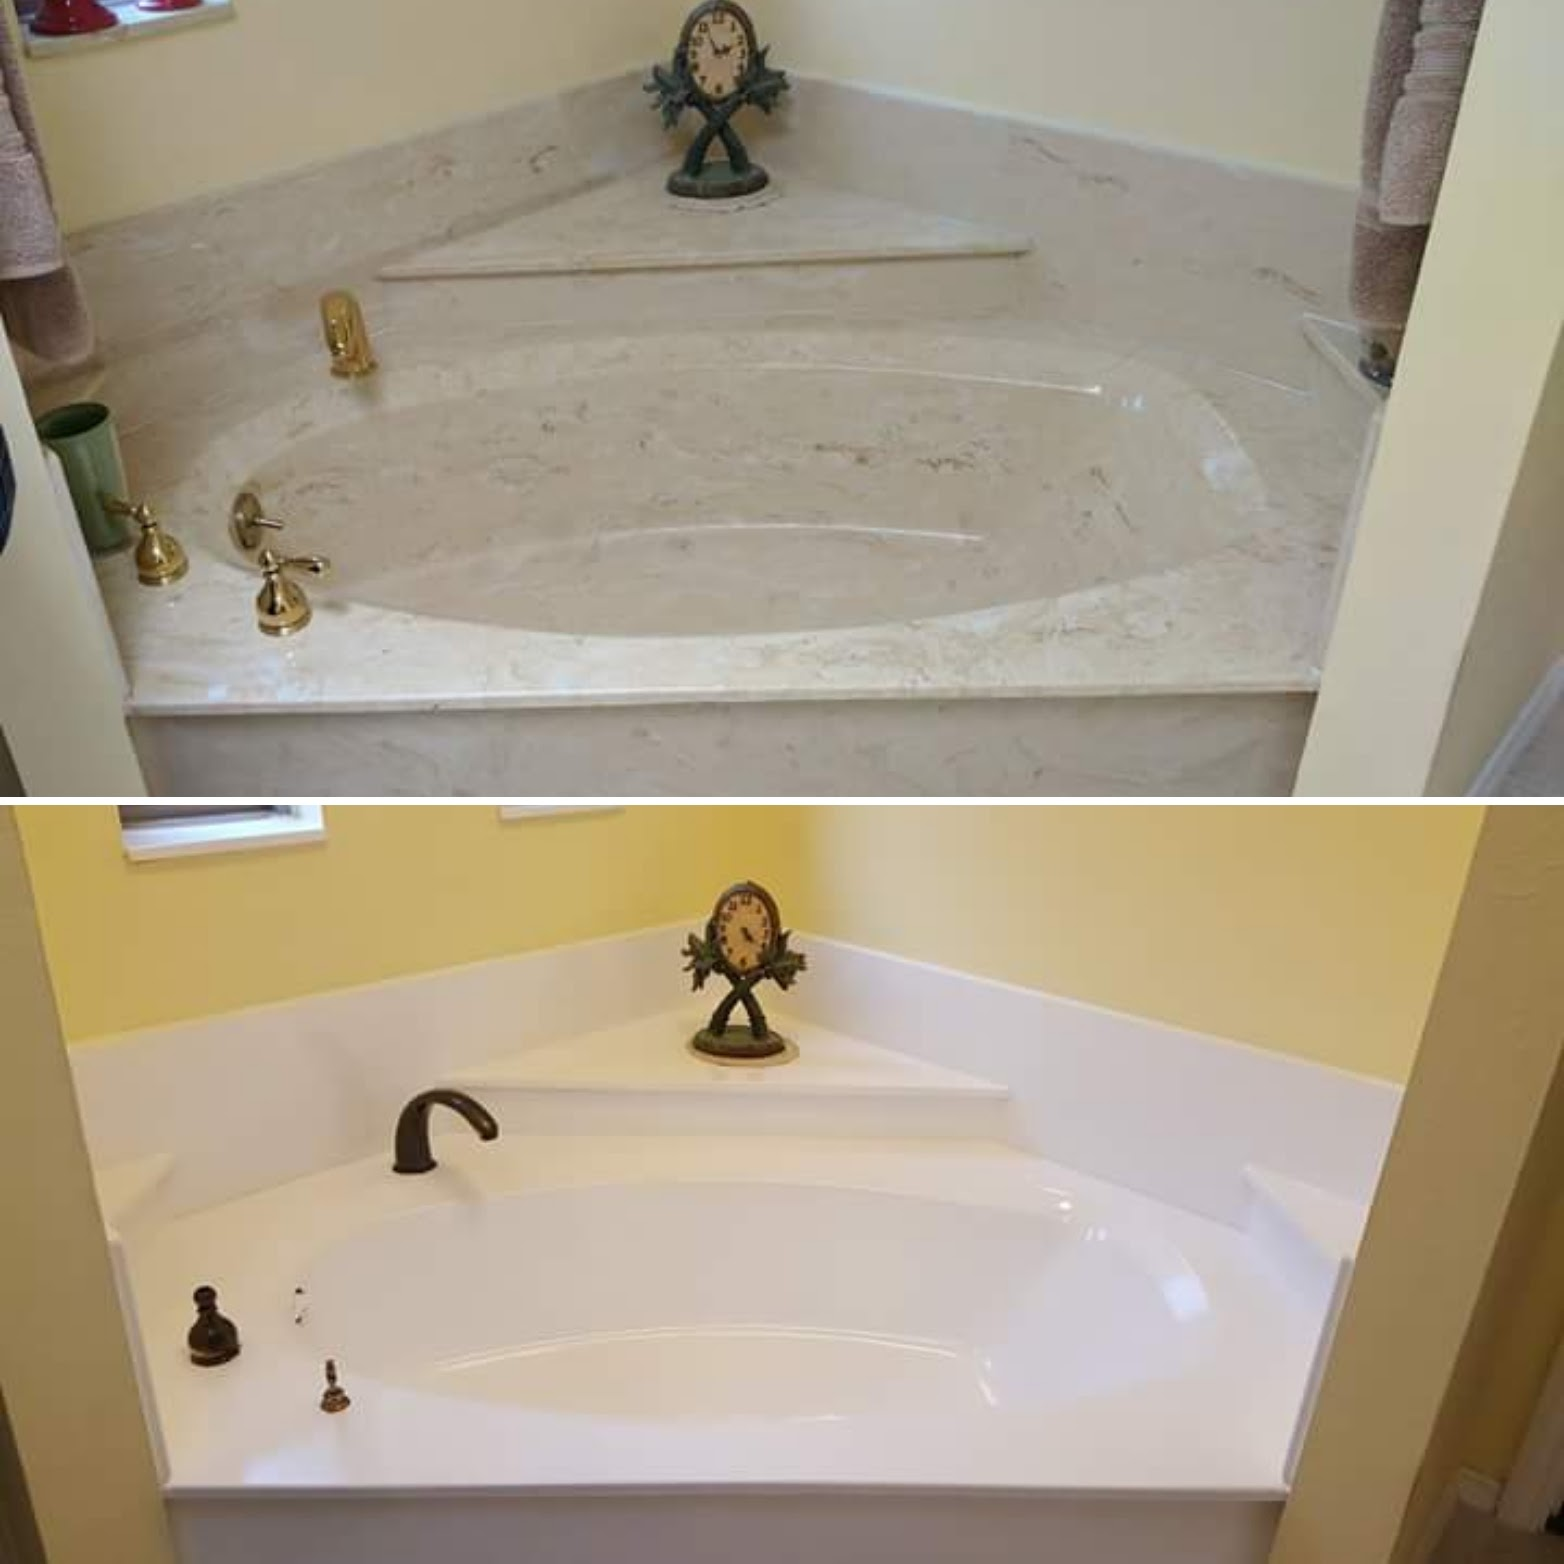 Cultured Marble Tub Refinishing